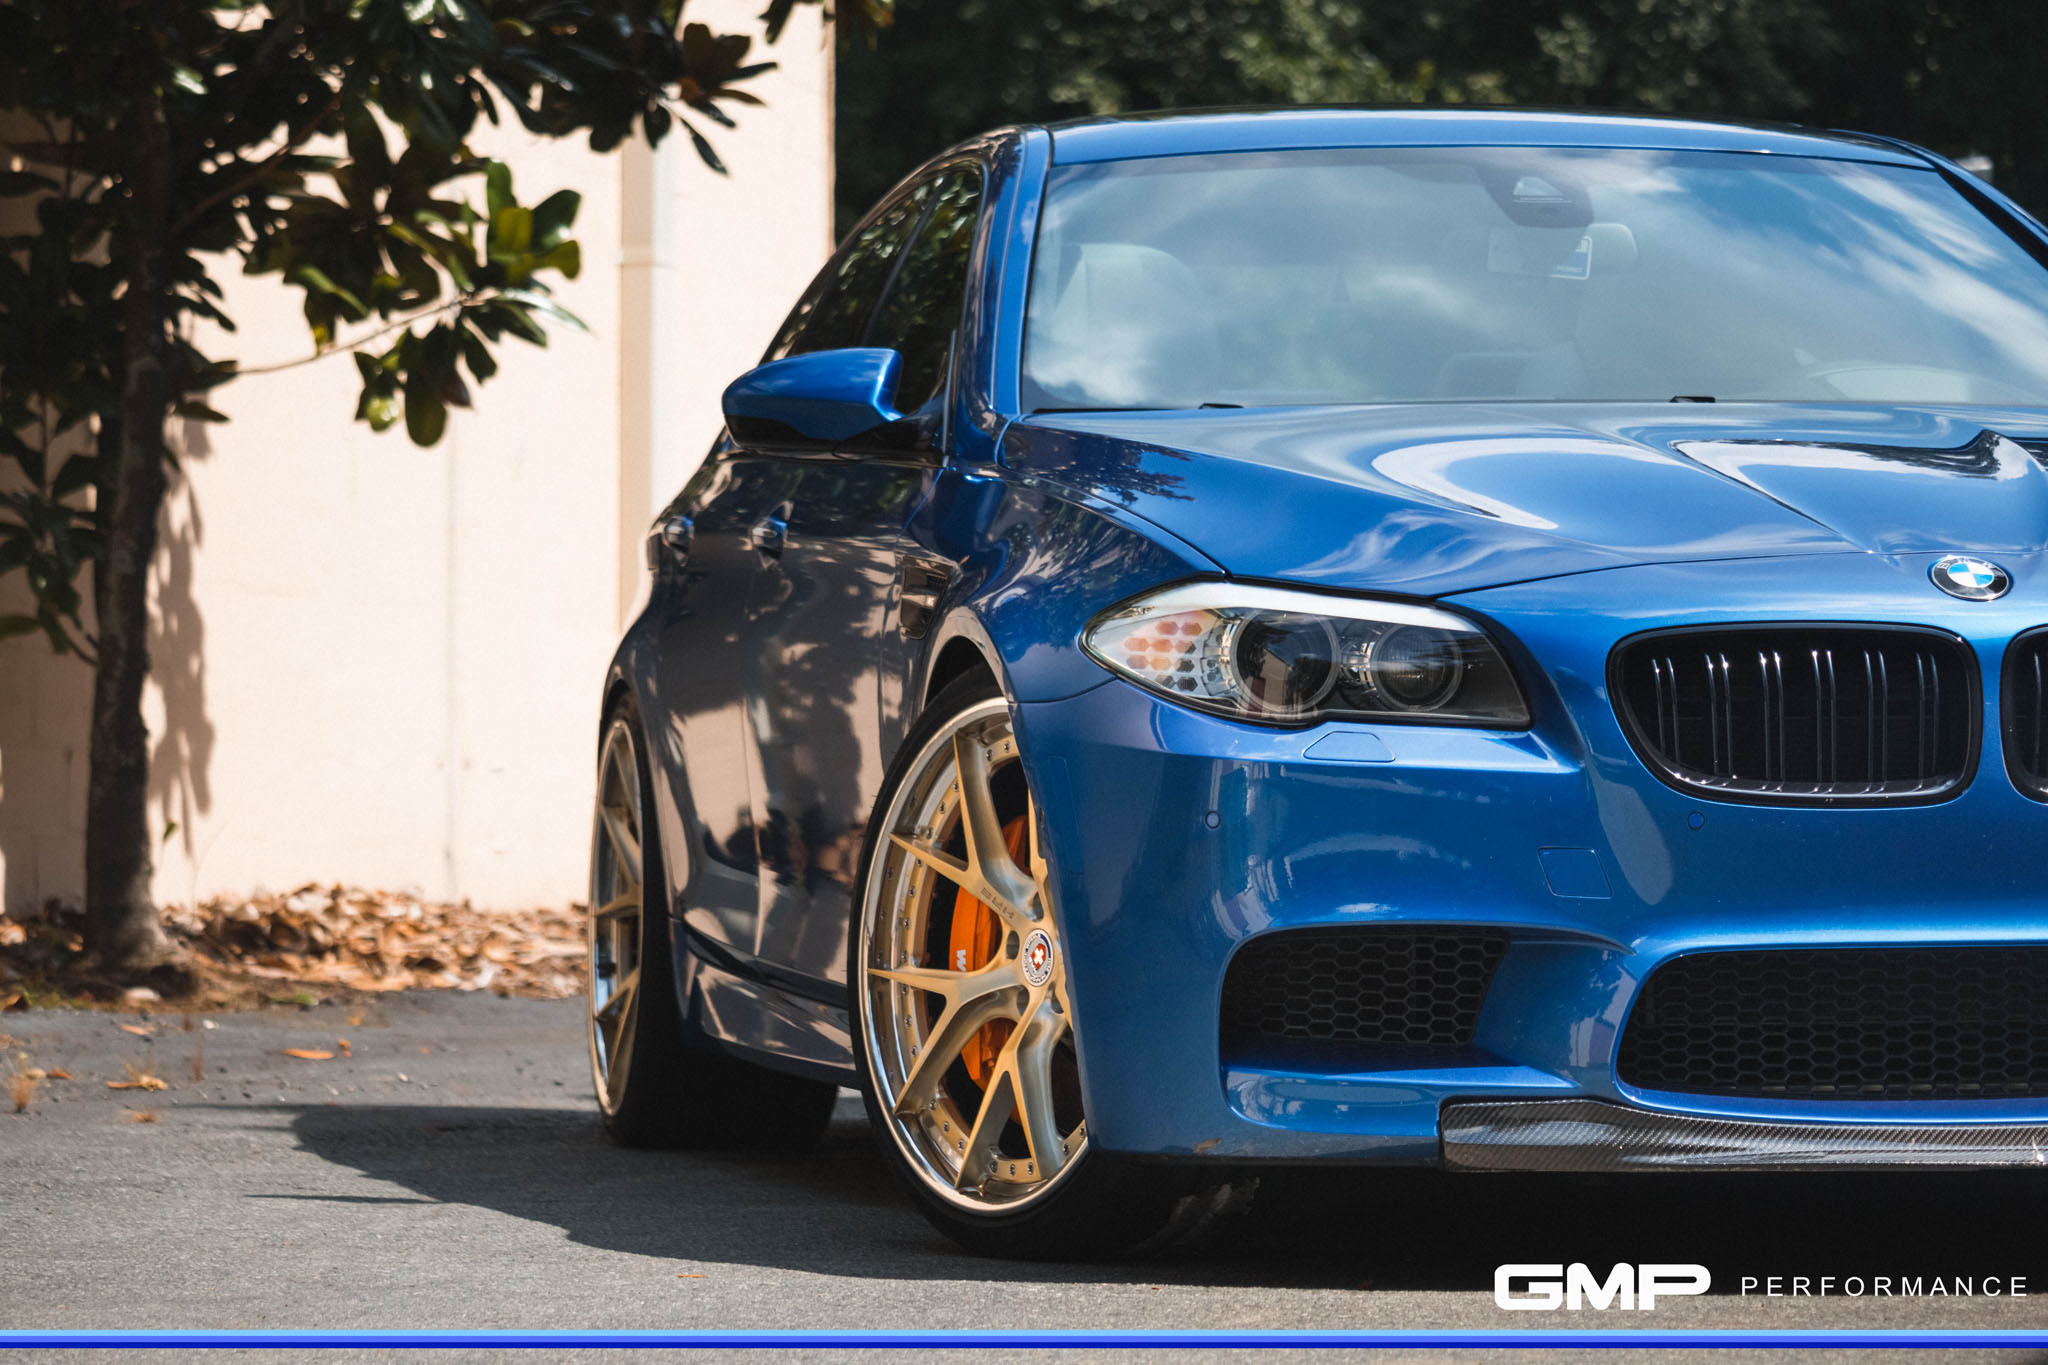 F10 BMW M5 by GMP Performance (1)